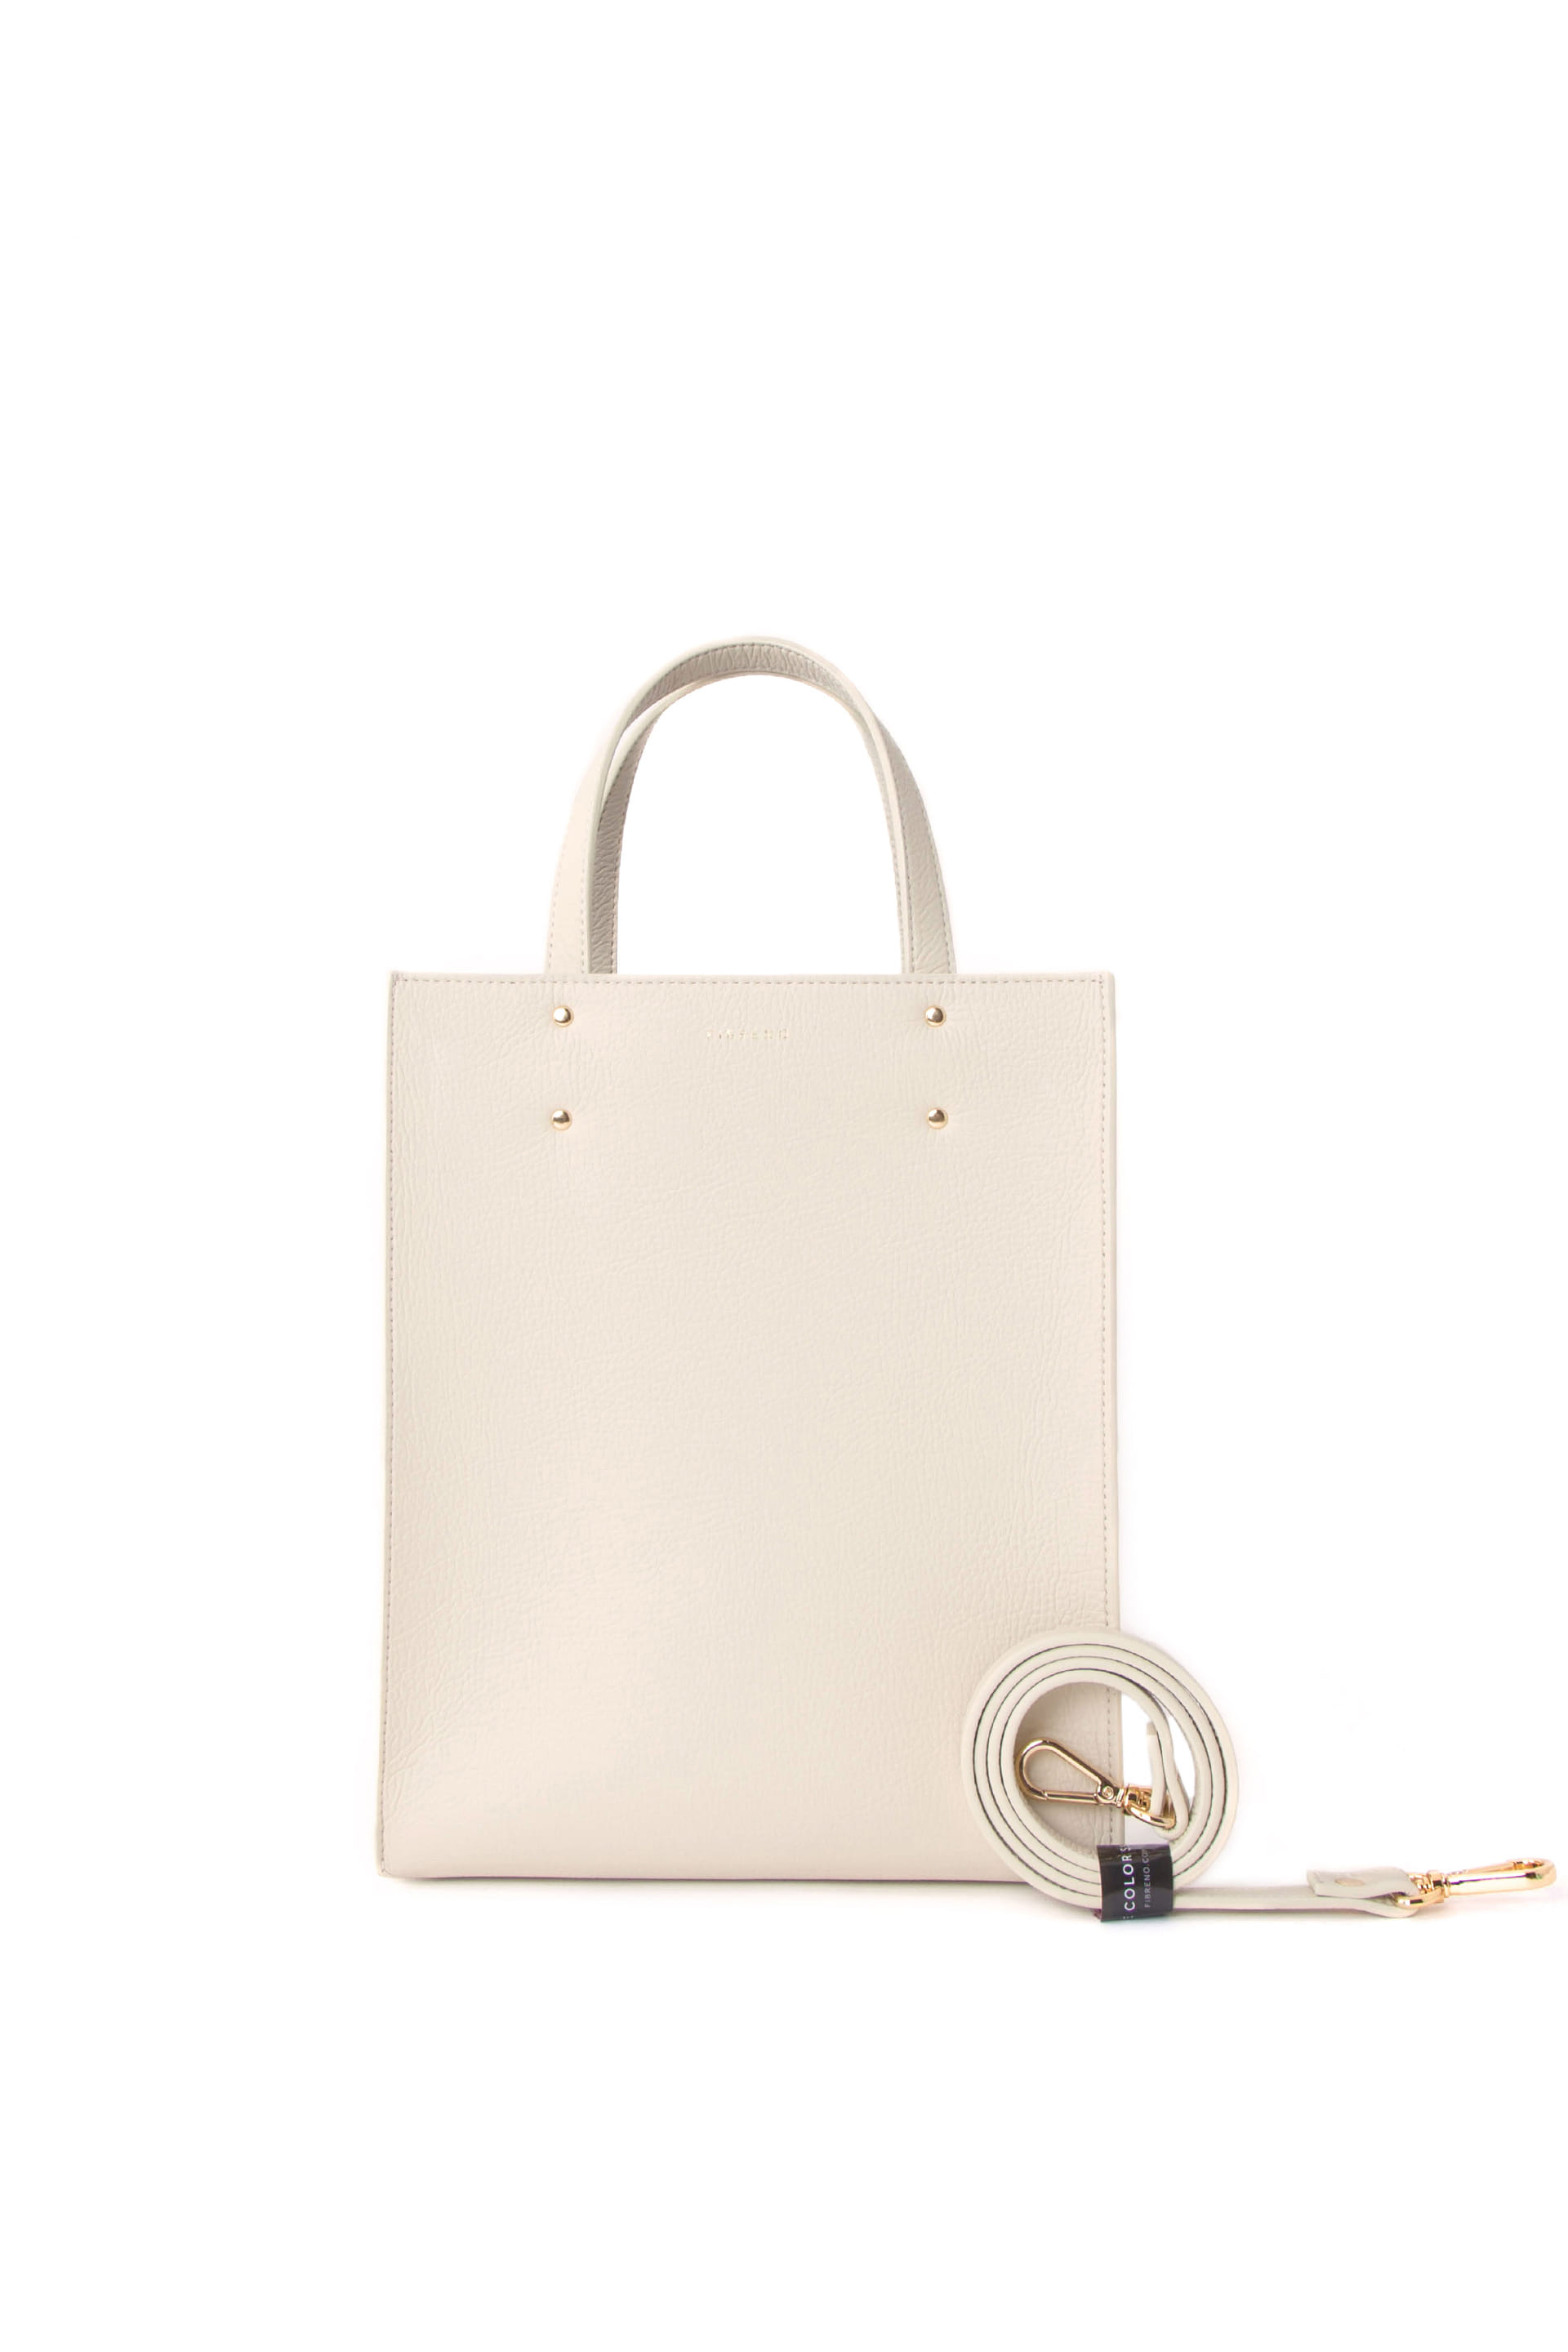 ORIGINAL MINI BAG 25 Ivory